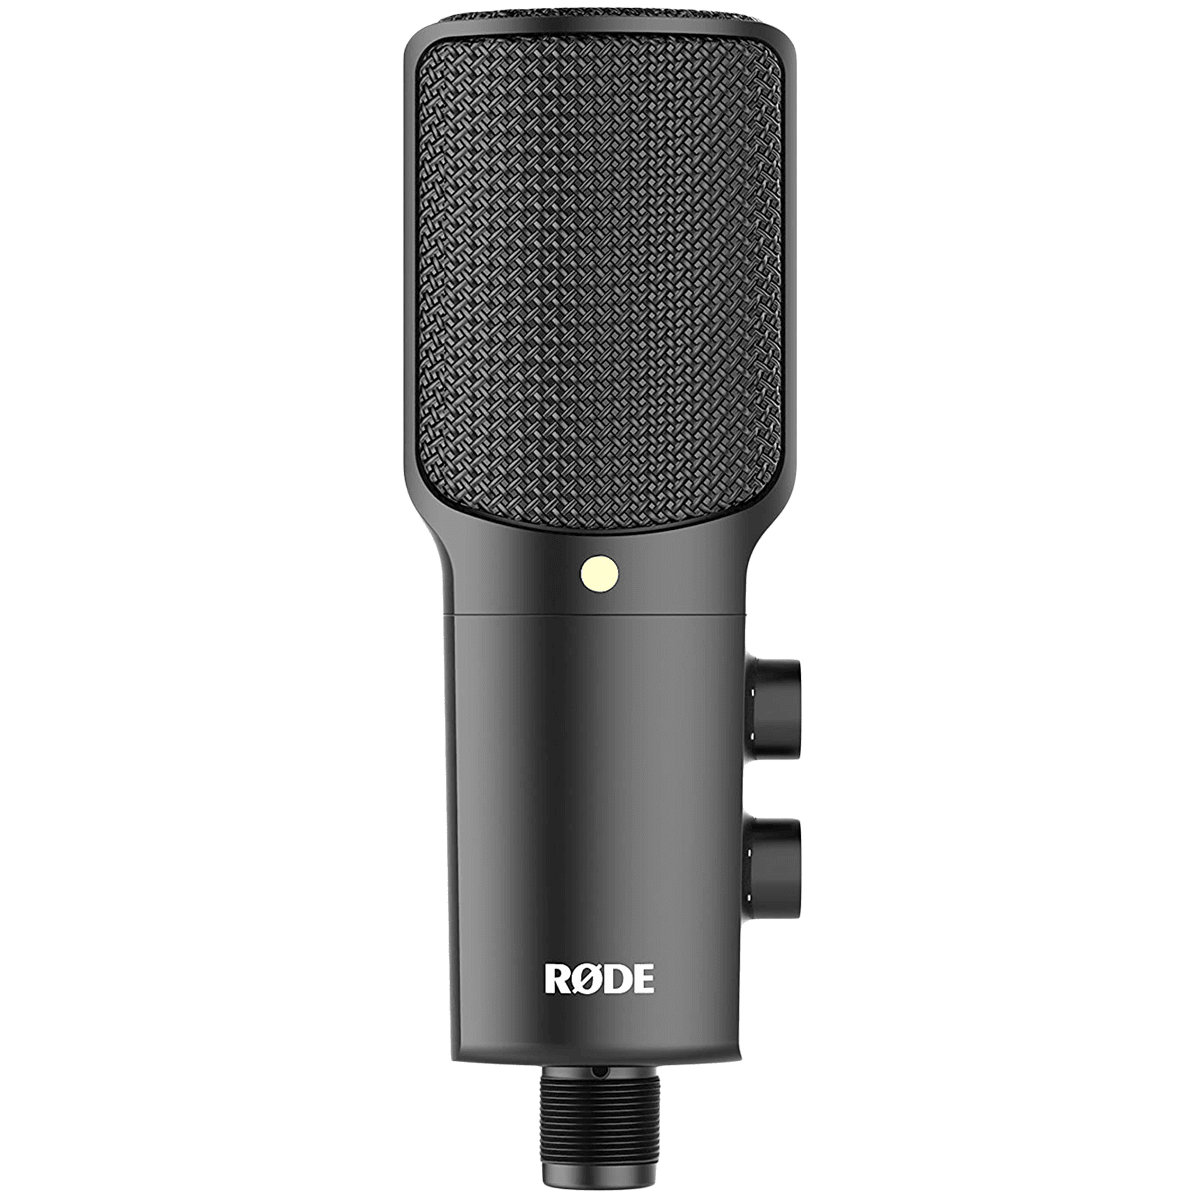 Rode NT Hanging Wired Condenser Microphone (Cardioid Pickup Pattern, NT-USB, Black)